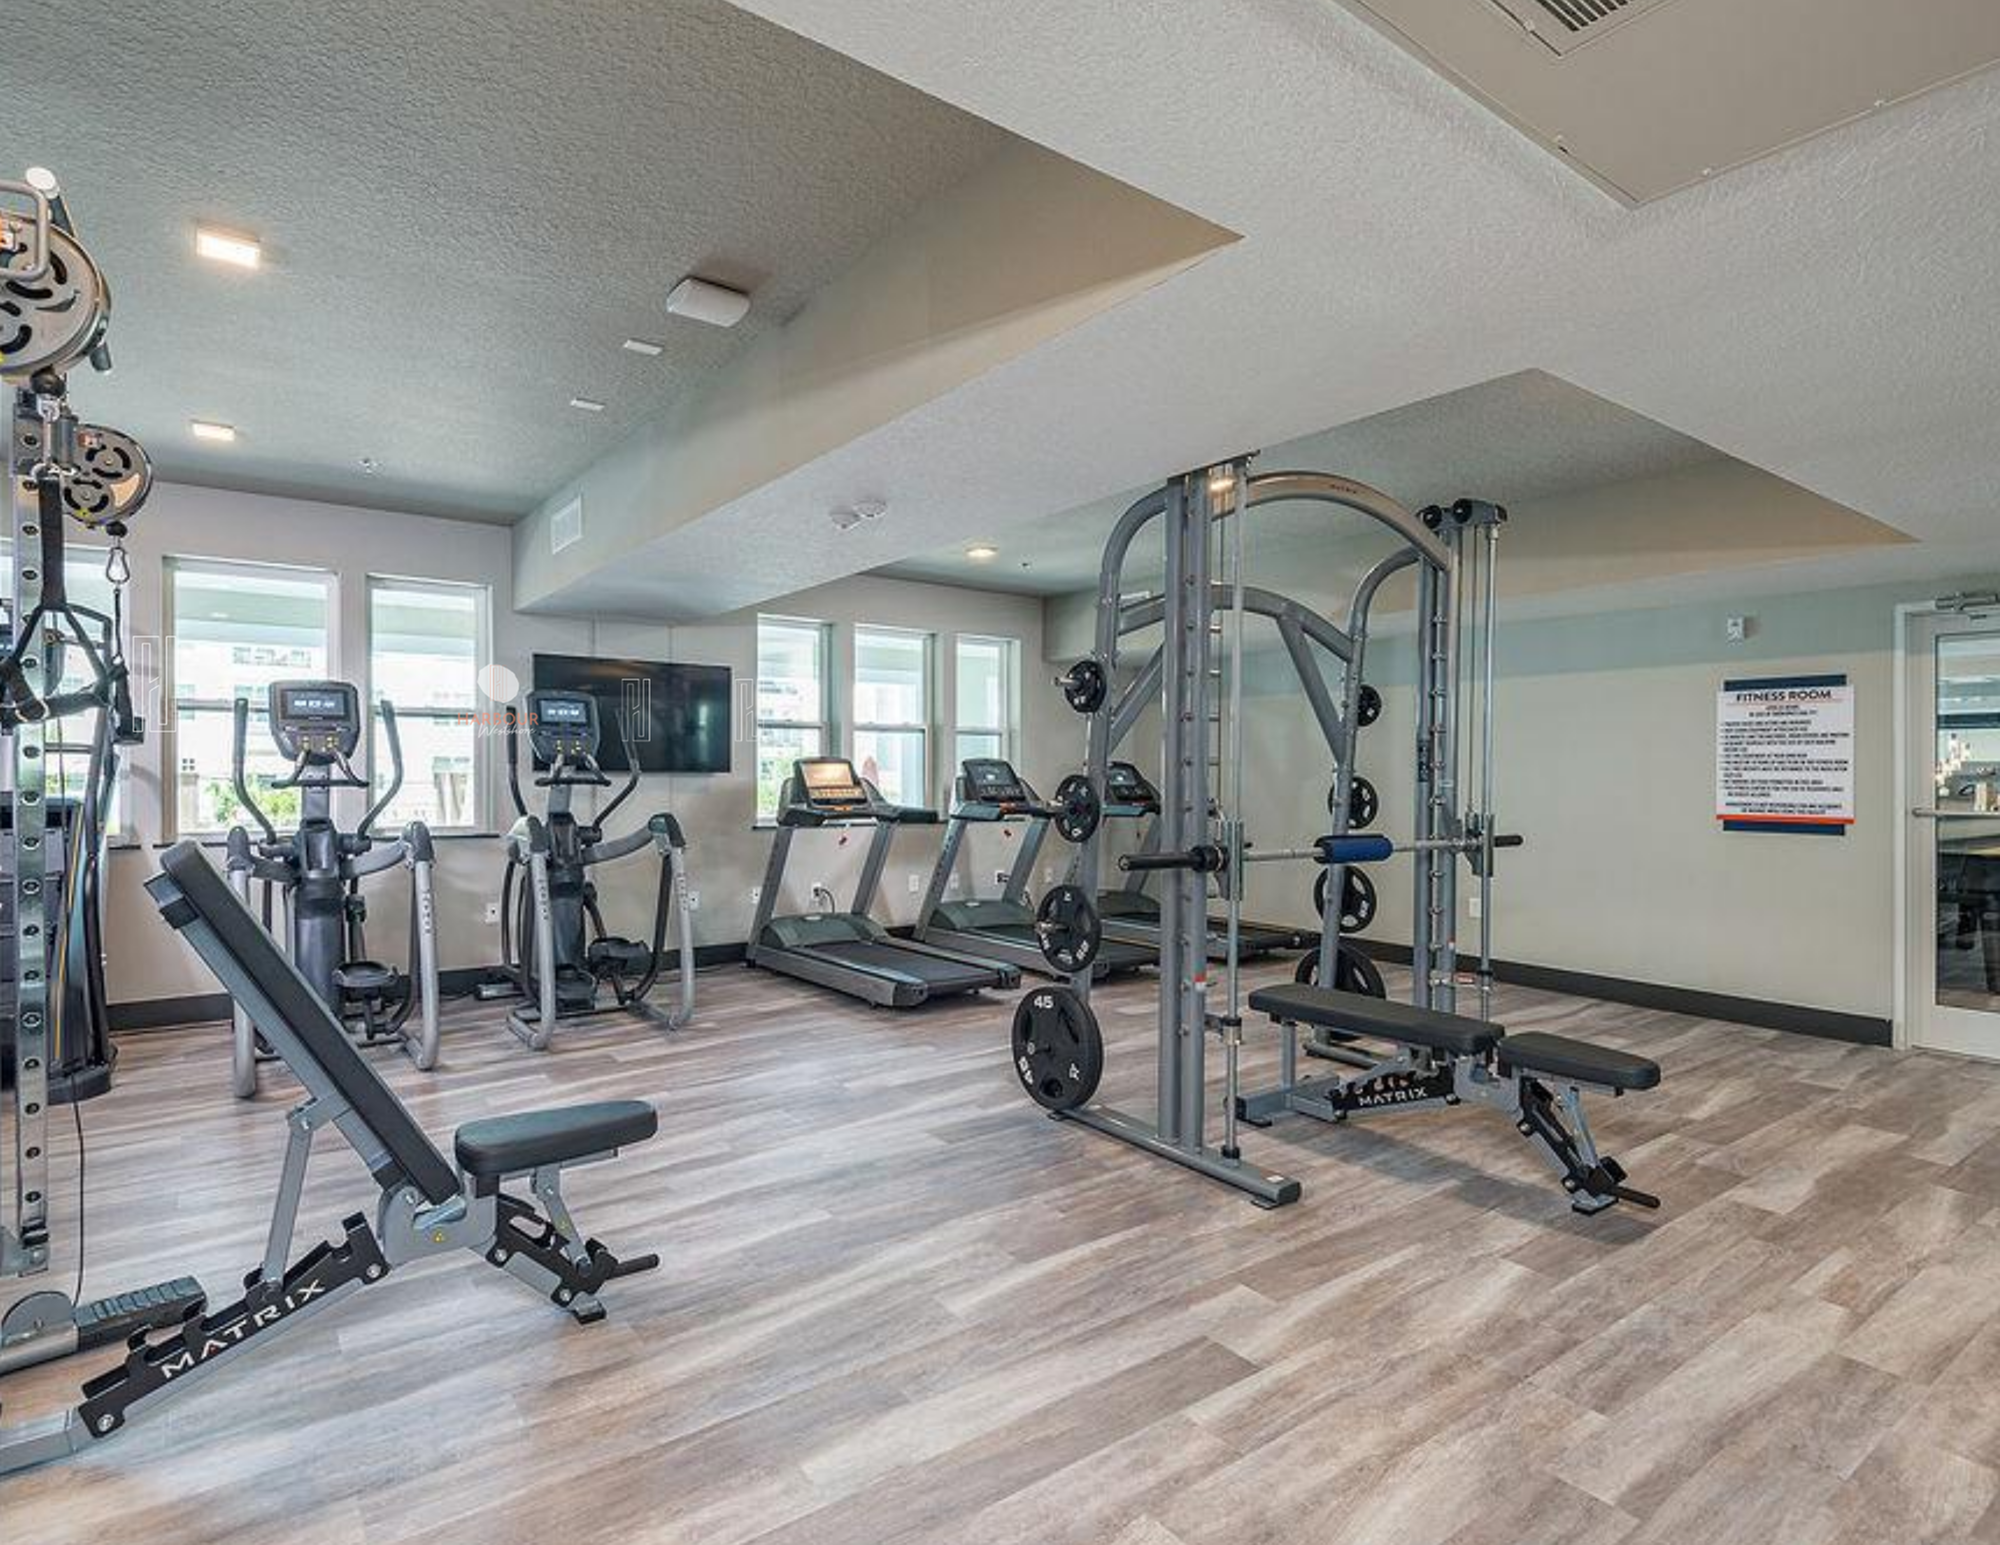 fitness center with strength and cardio equipment, television on wall, plank flooring